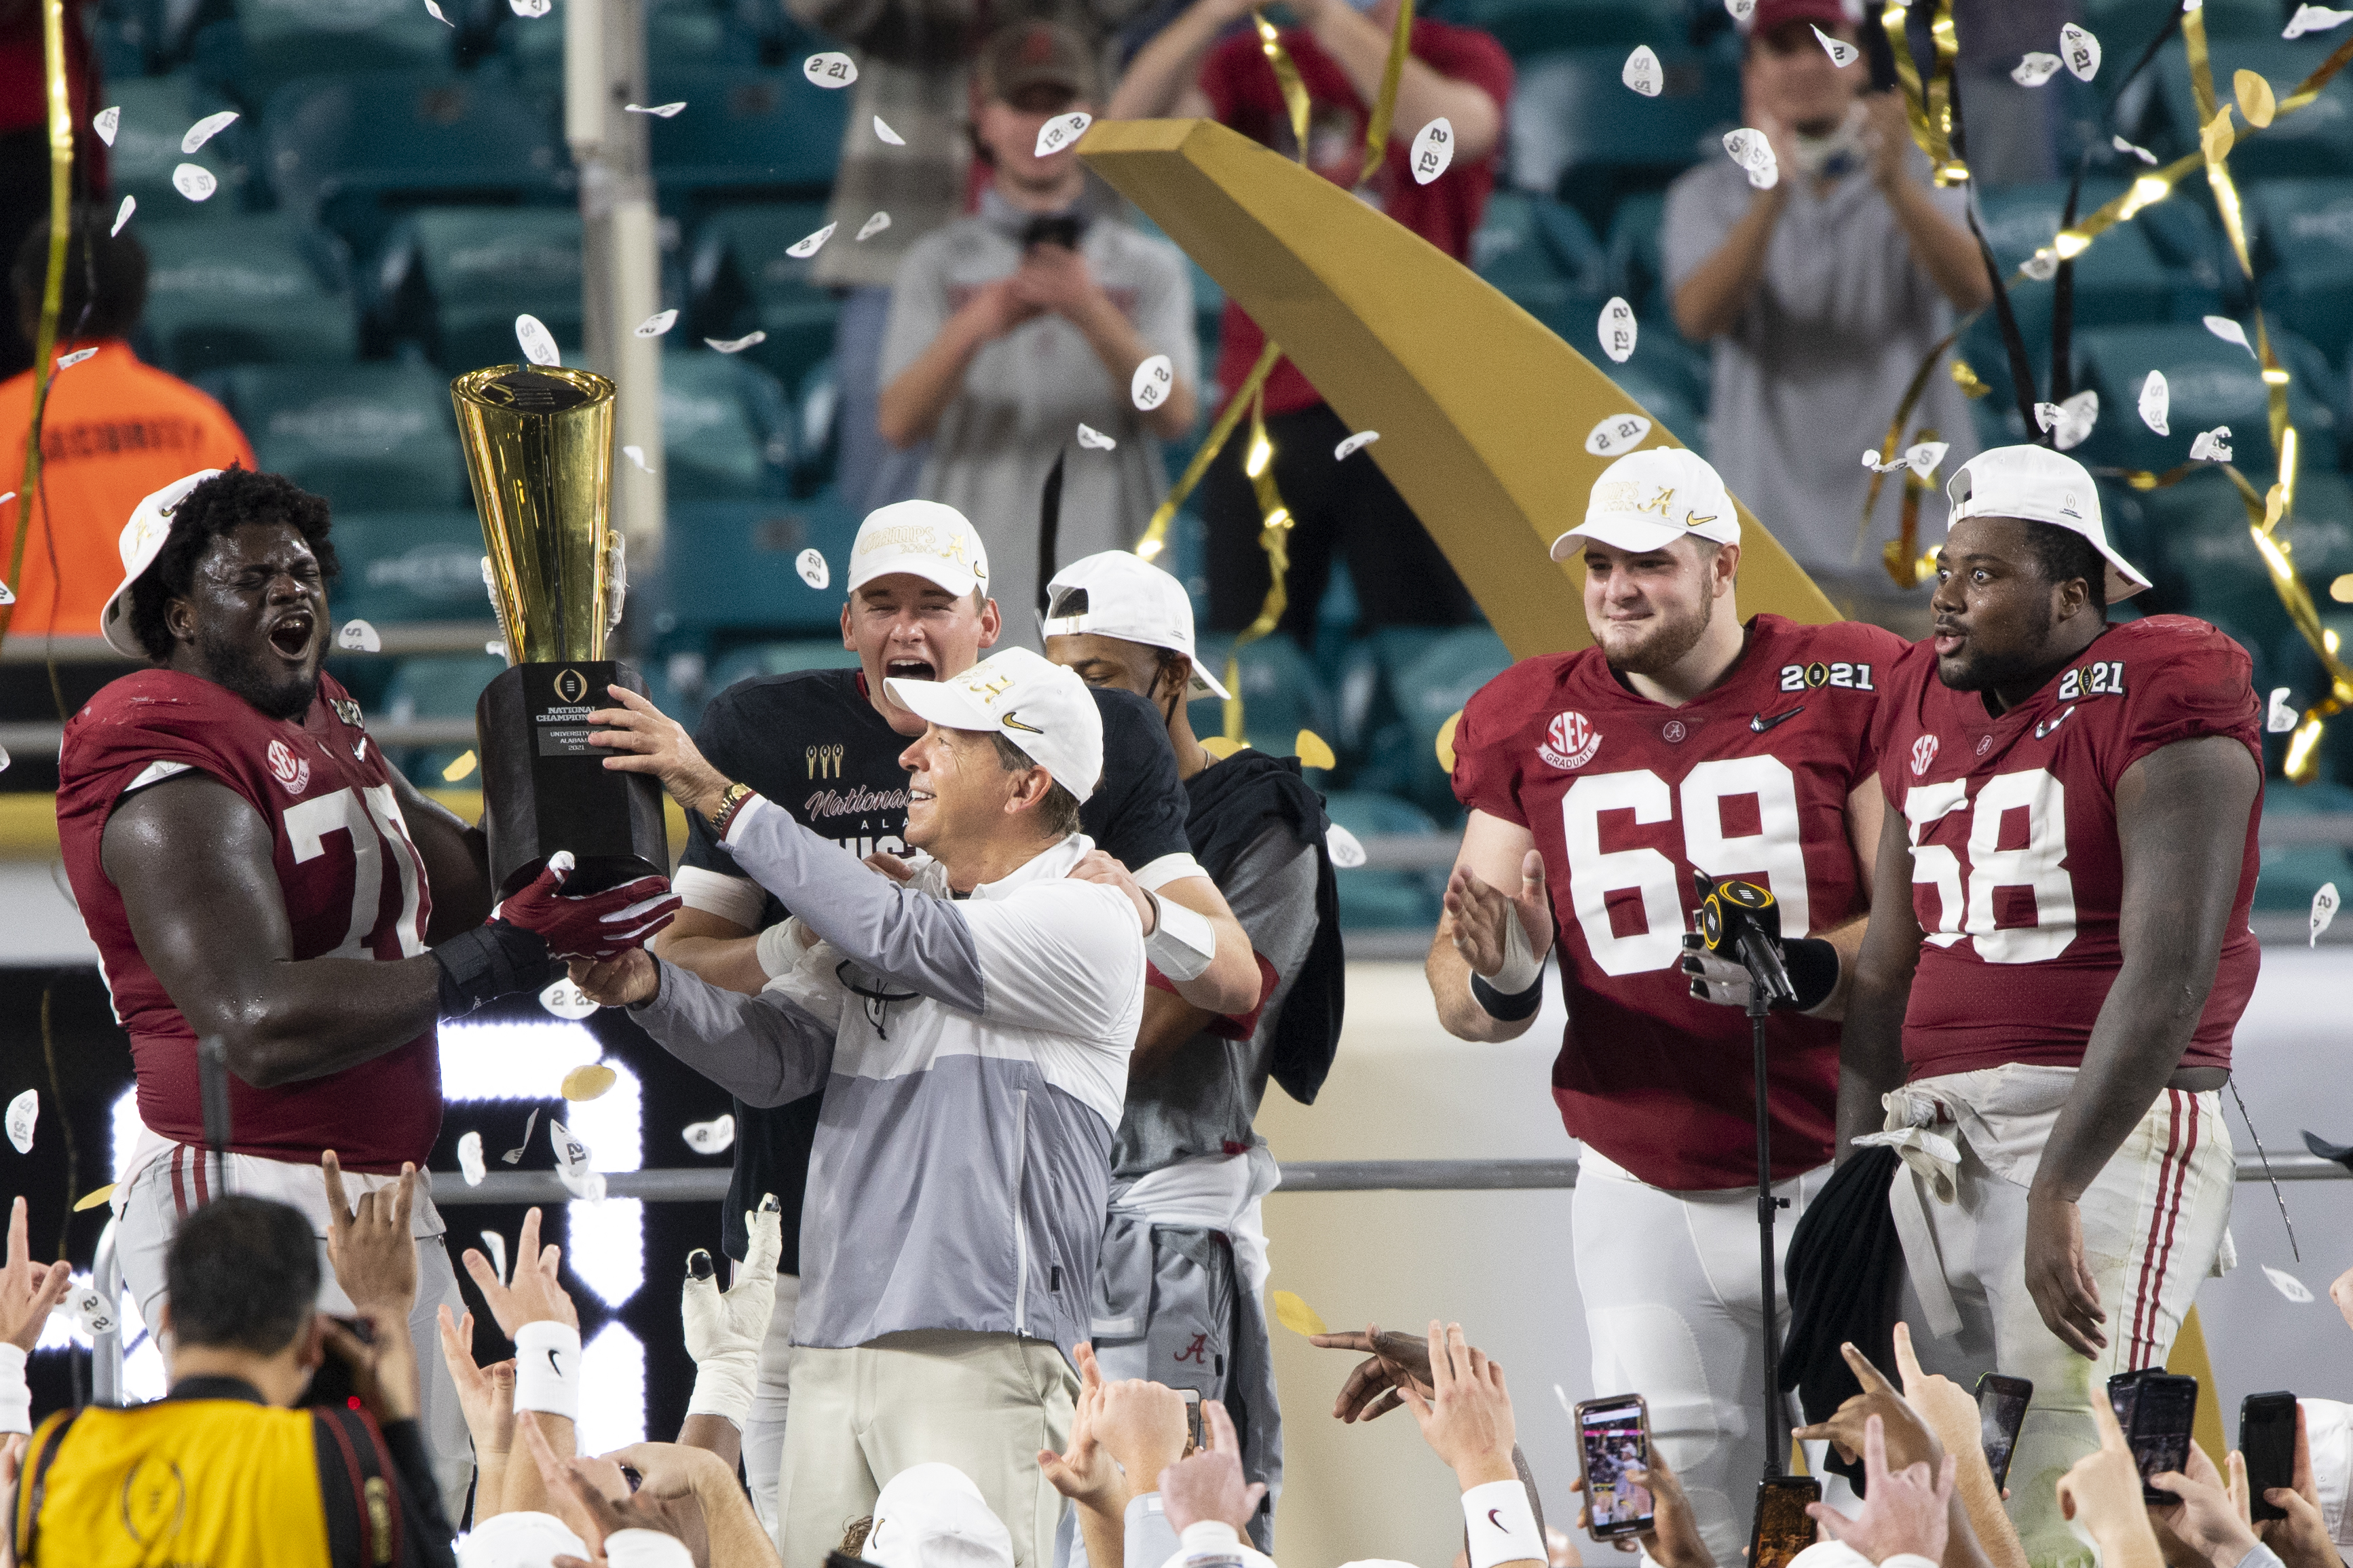 Alabama Crimson Tide offensive lineman Alex Leatherwood and Alabama Crimson Tide head coach Nick Saban hold the trophy as they celebrate on the stage.